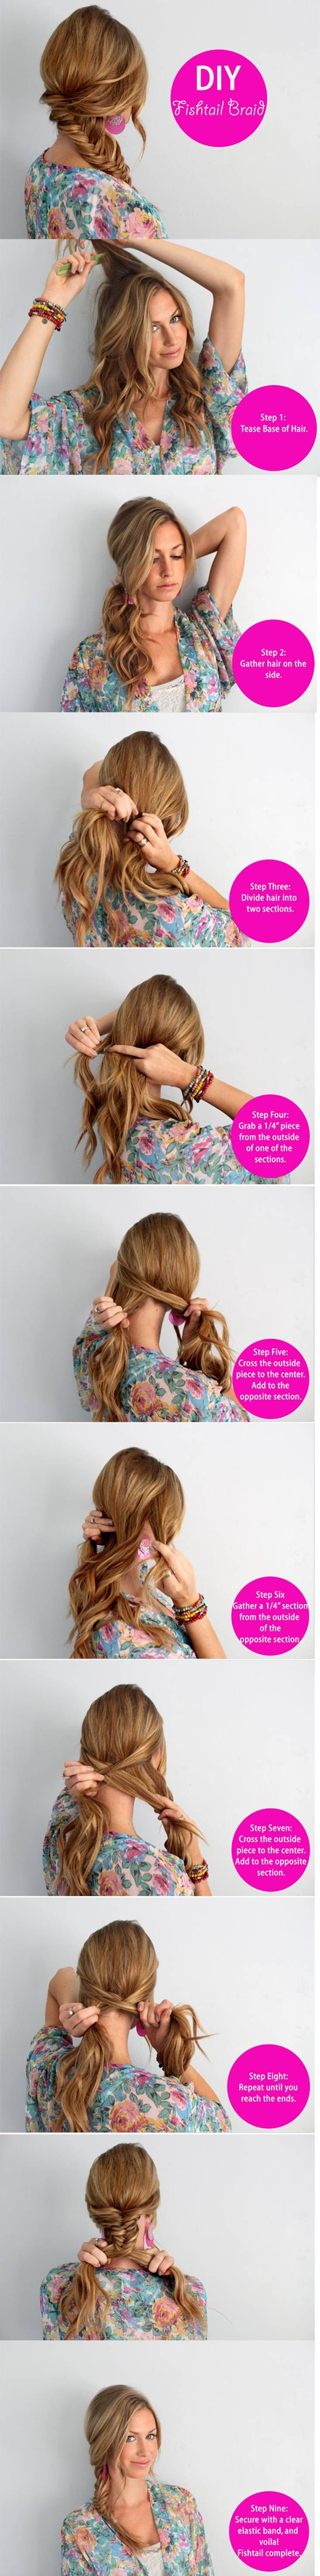 Find This Pin And More On Hair Extensions And Braids